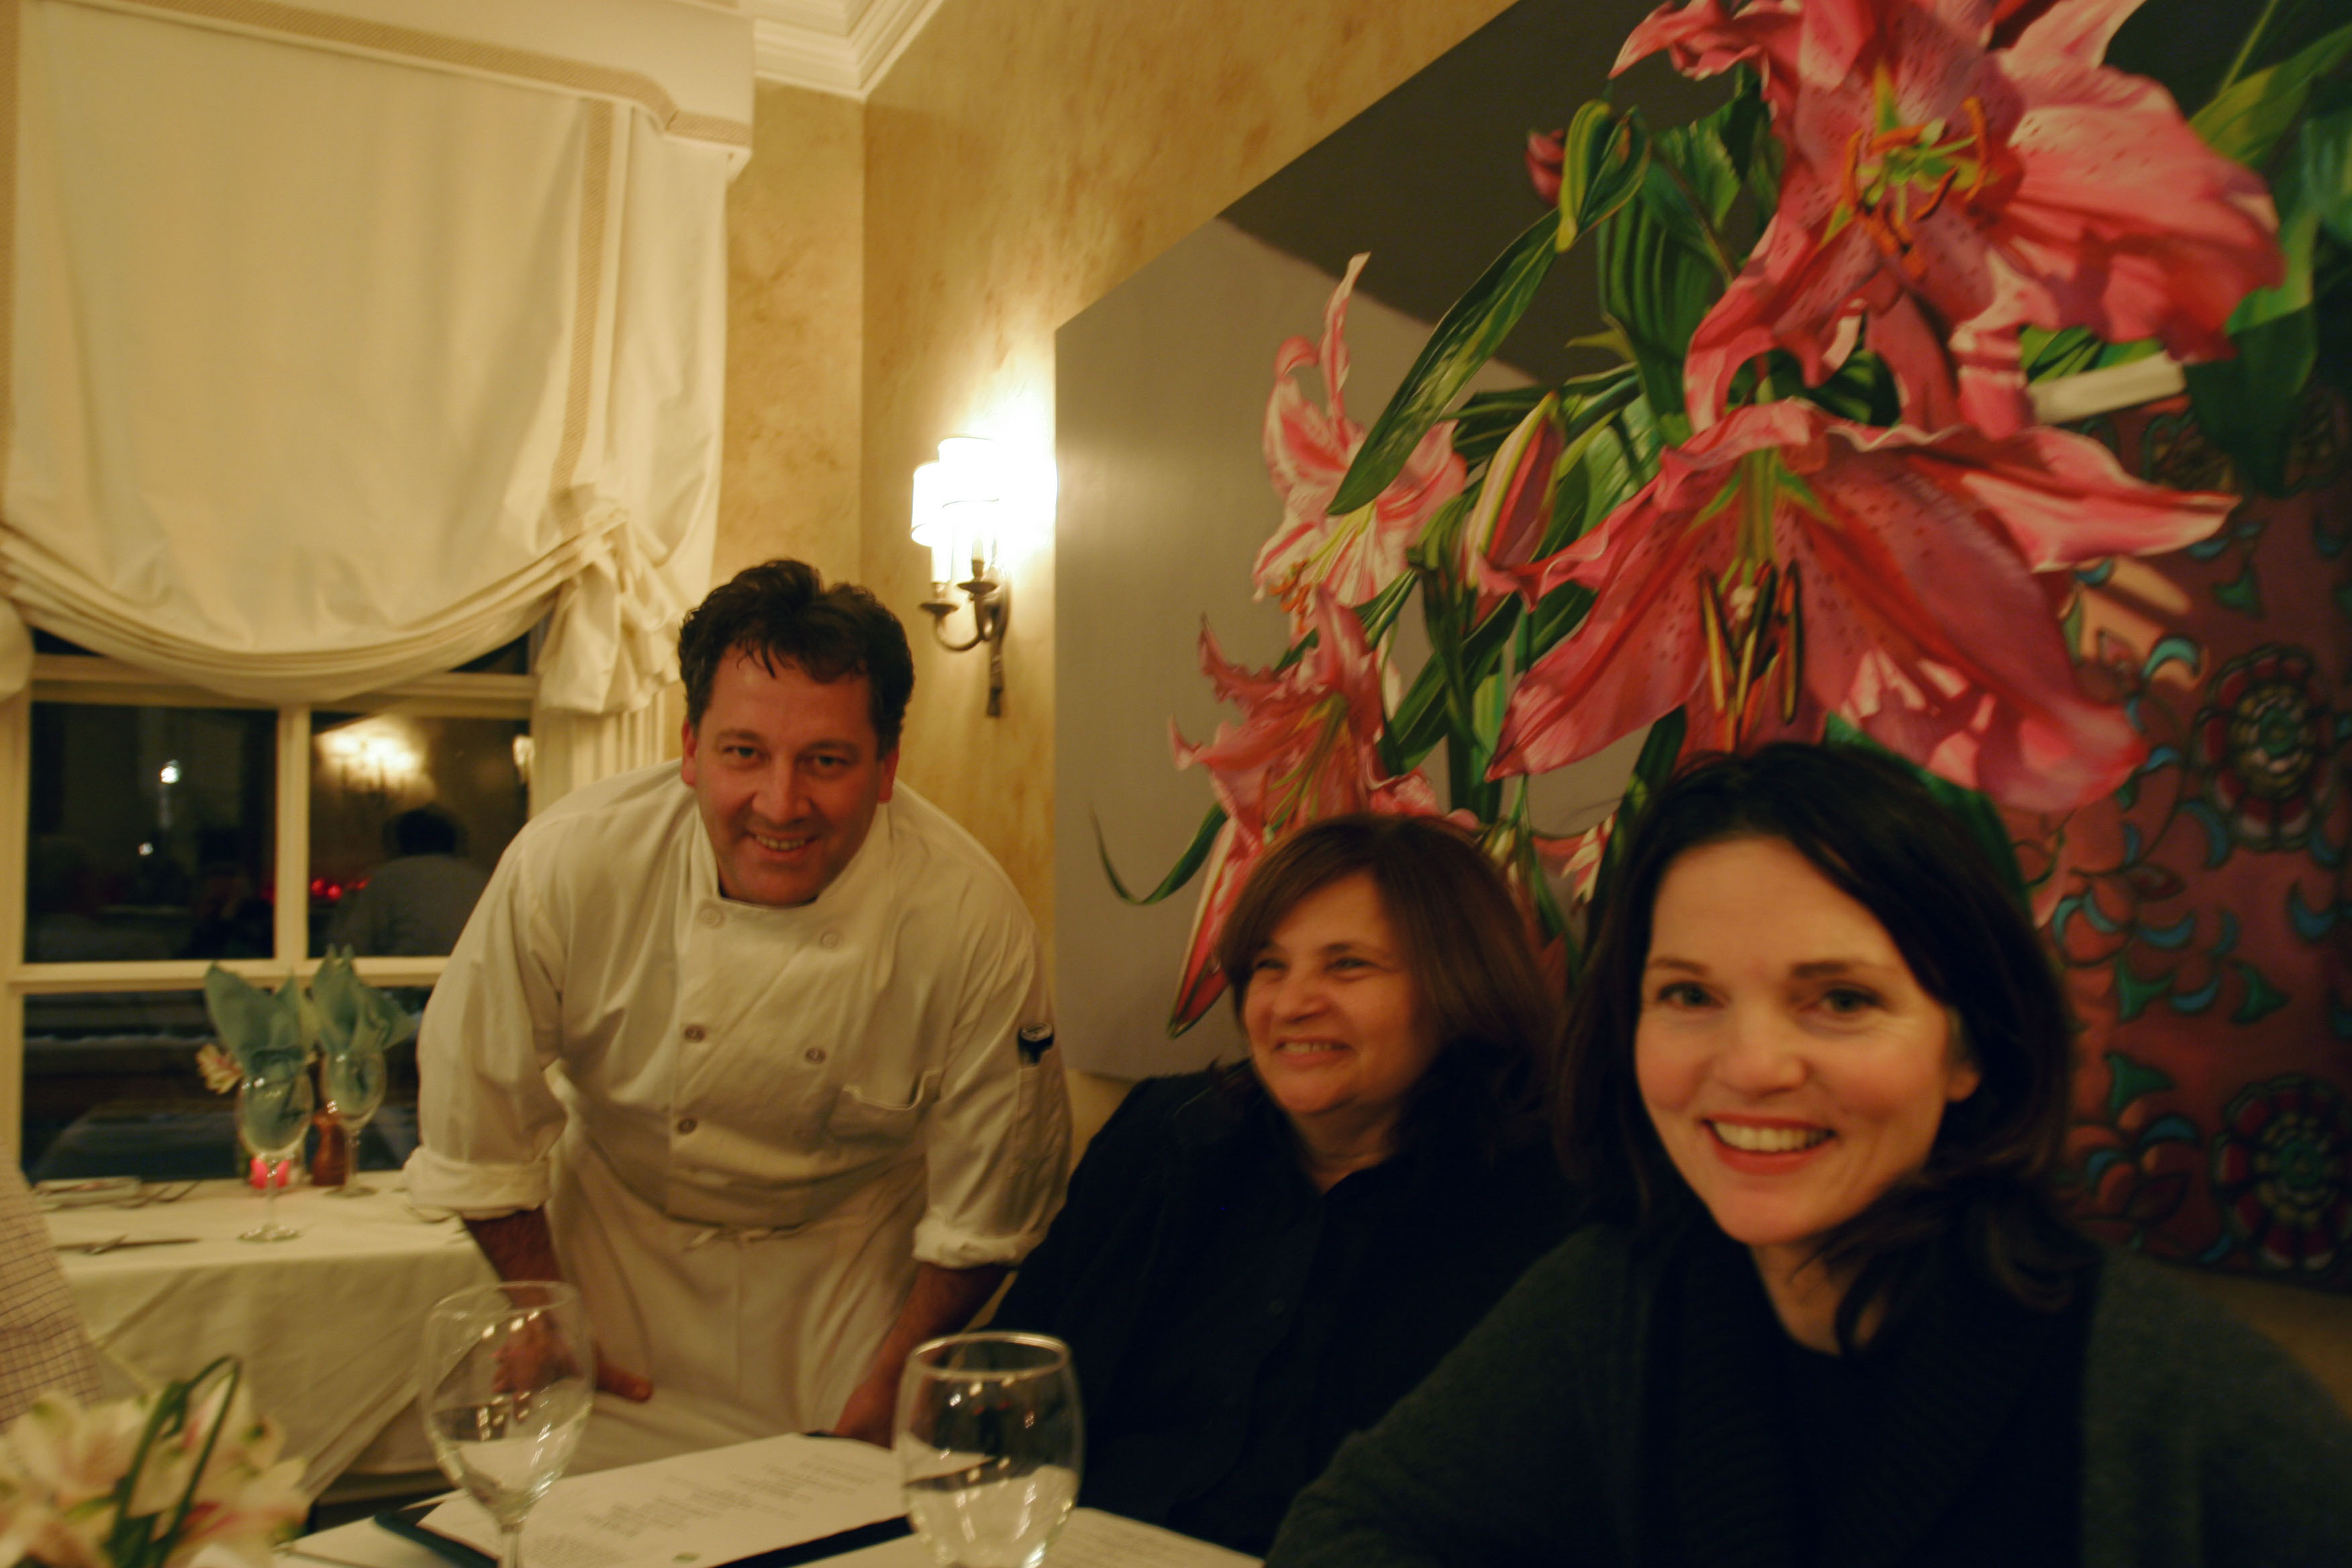 Chef Matt Murphy goes over his menu specialties with owner Lia Polites and American Yogini, Mary McGuire